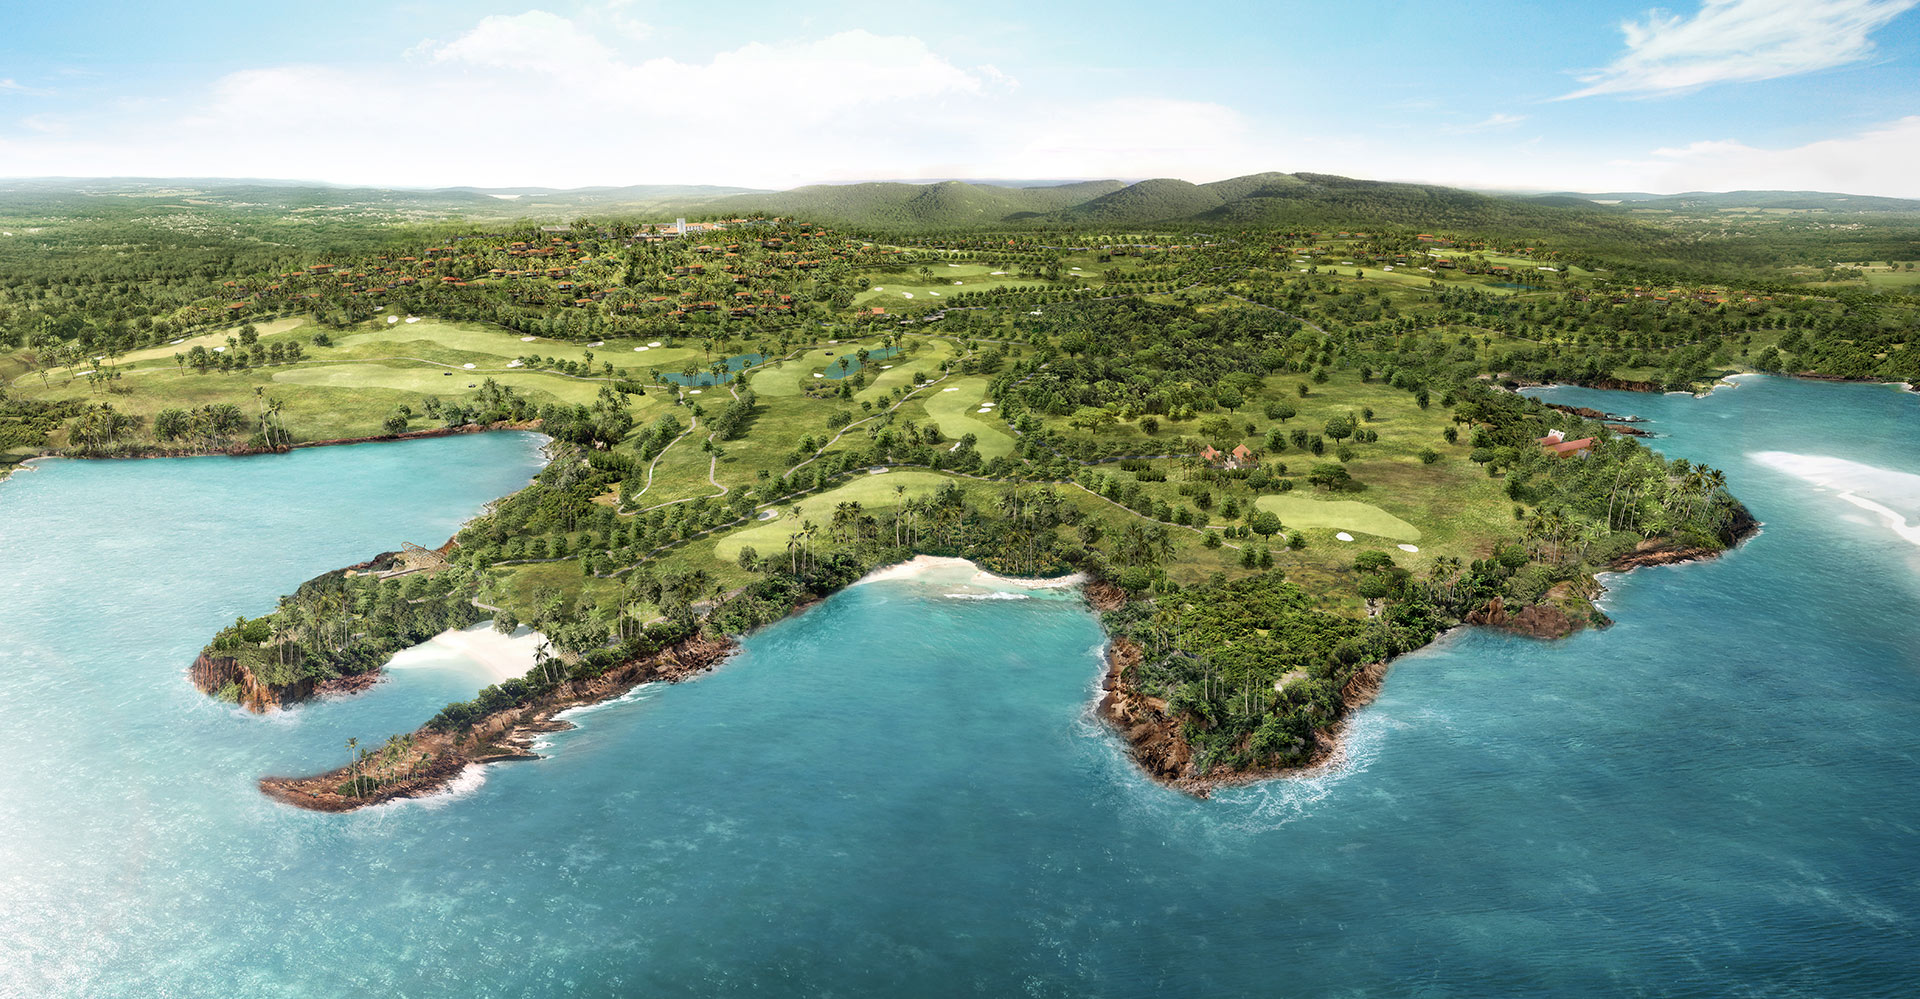 Four Seasons Golf Resort Residences - Goa India - WATG -Aerial